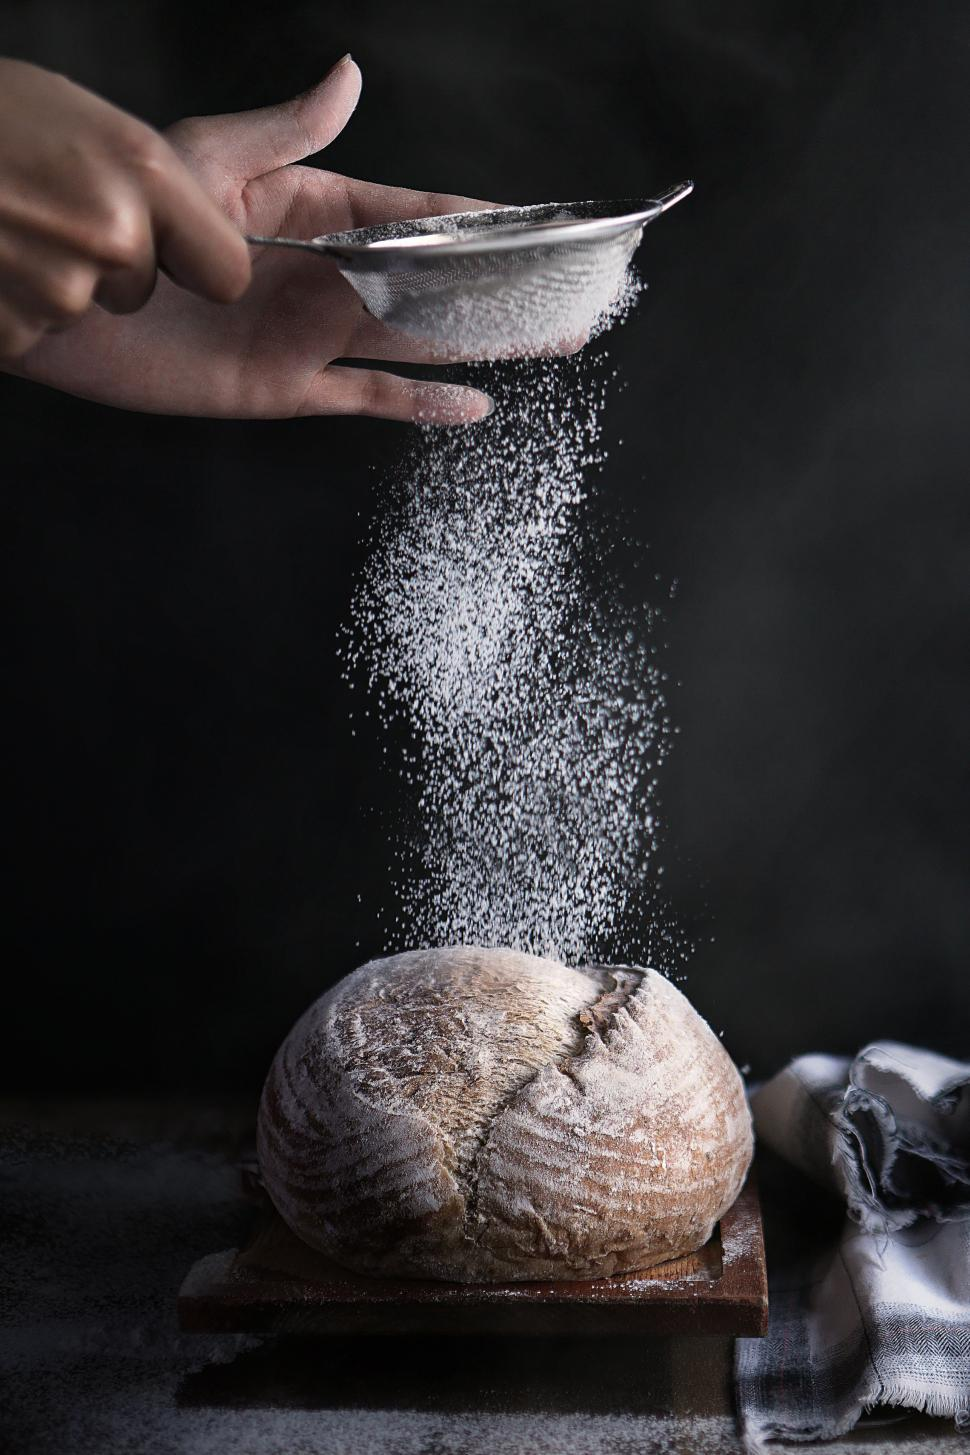 Download Free Stock HD Photo of Baker sprinkles powdered flour on bread Online